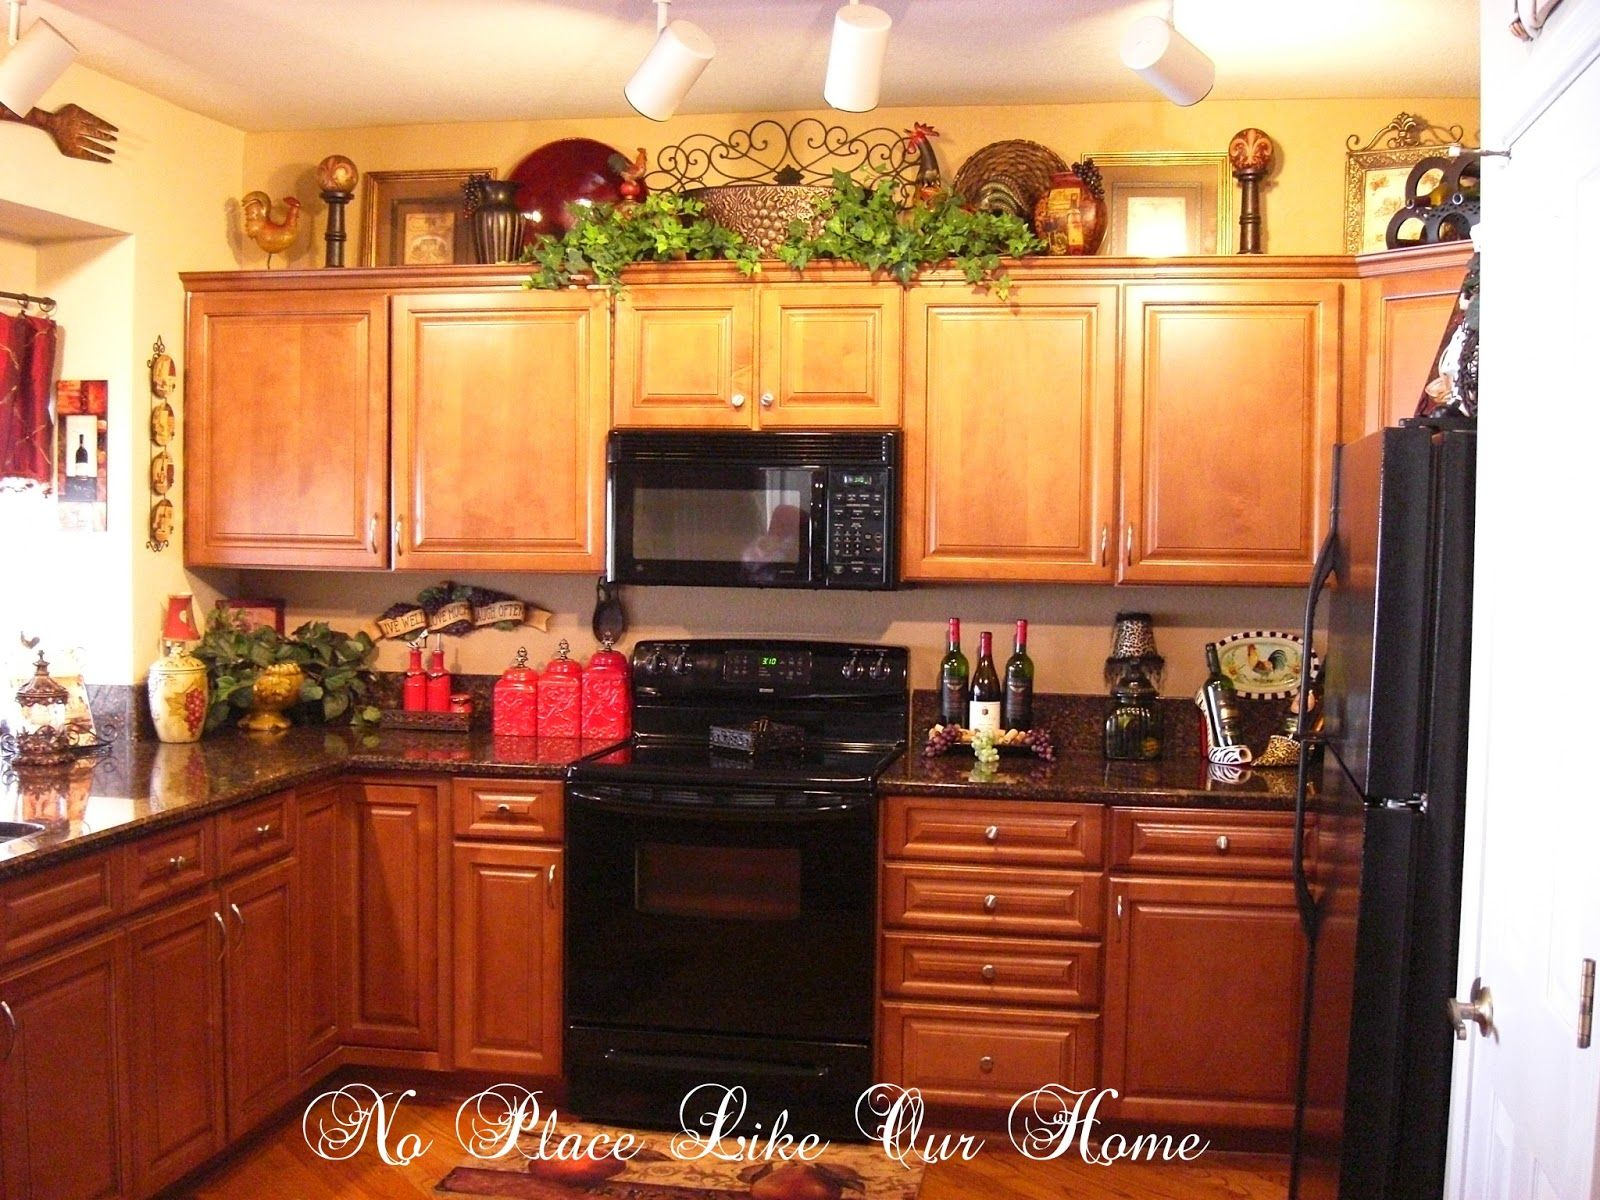 Good Decorating Above Kitchen Cabinets Tuscany | Hereu0027s A Closer Look At The Top  Of The Cabinets